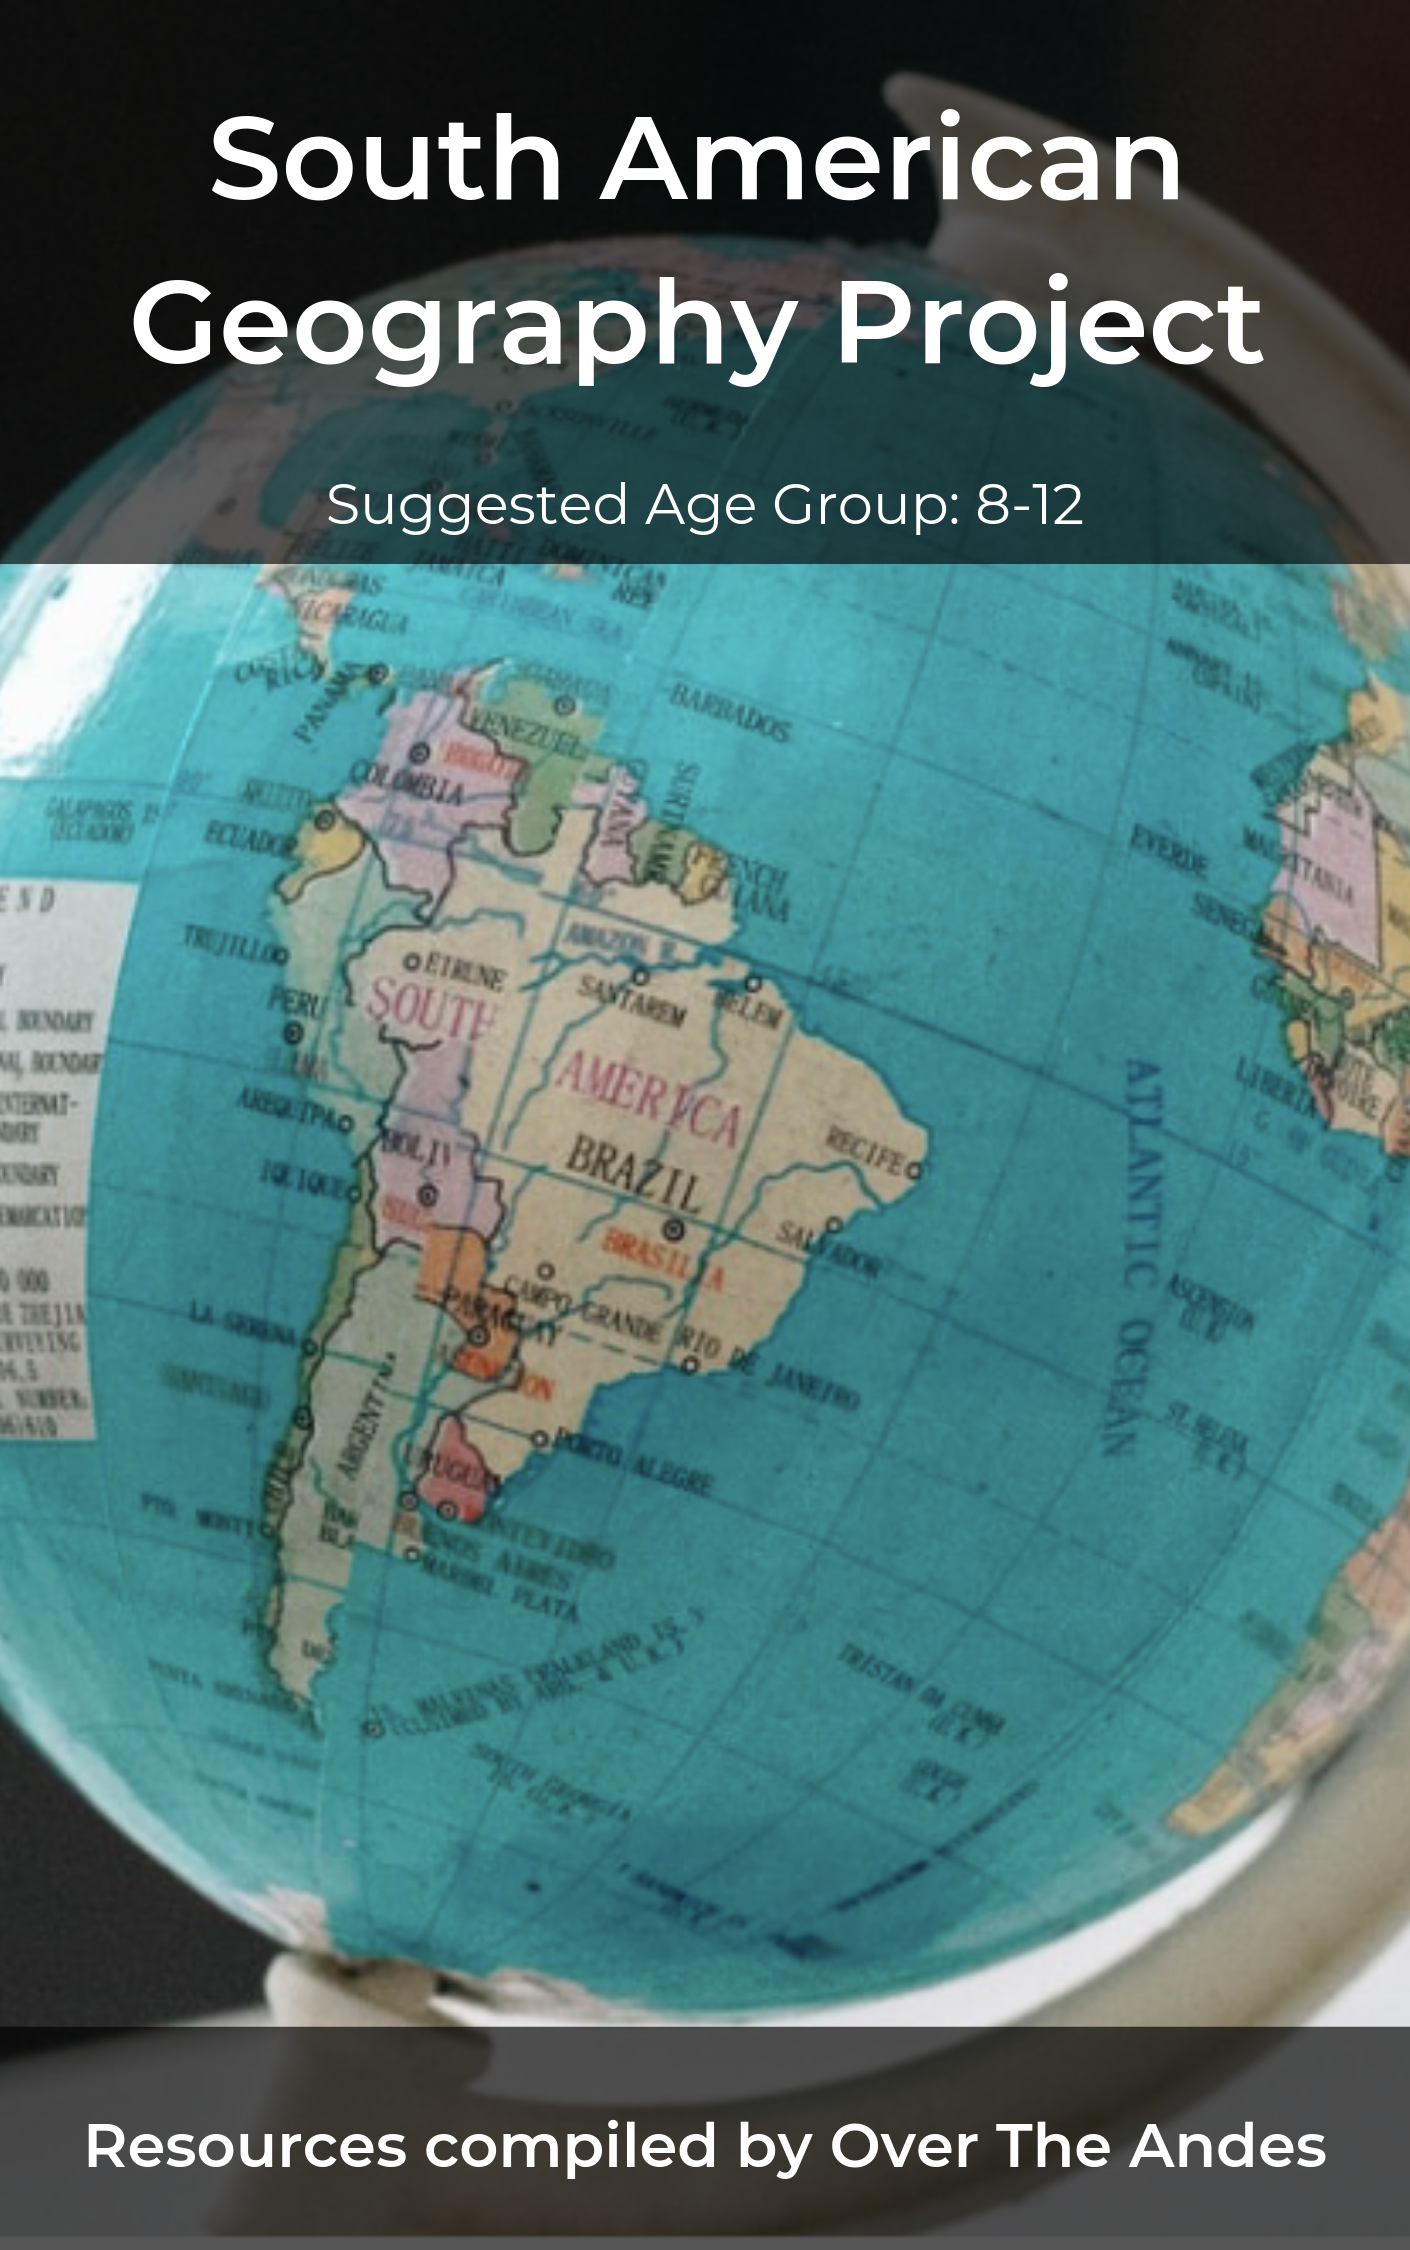 South America Geography Project Cover